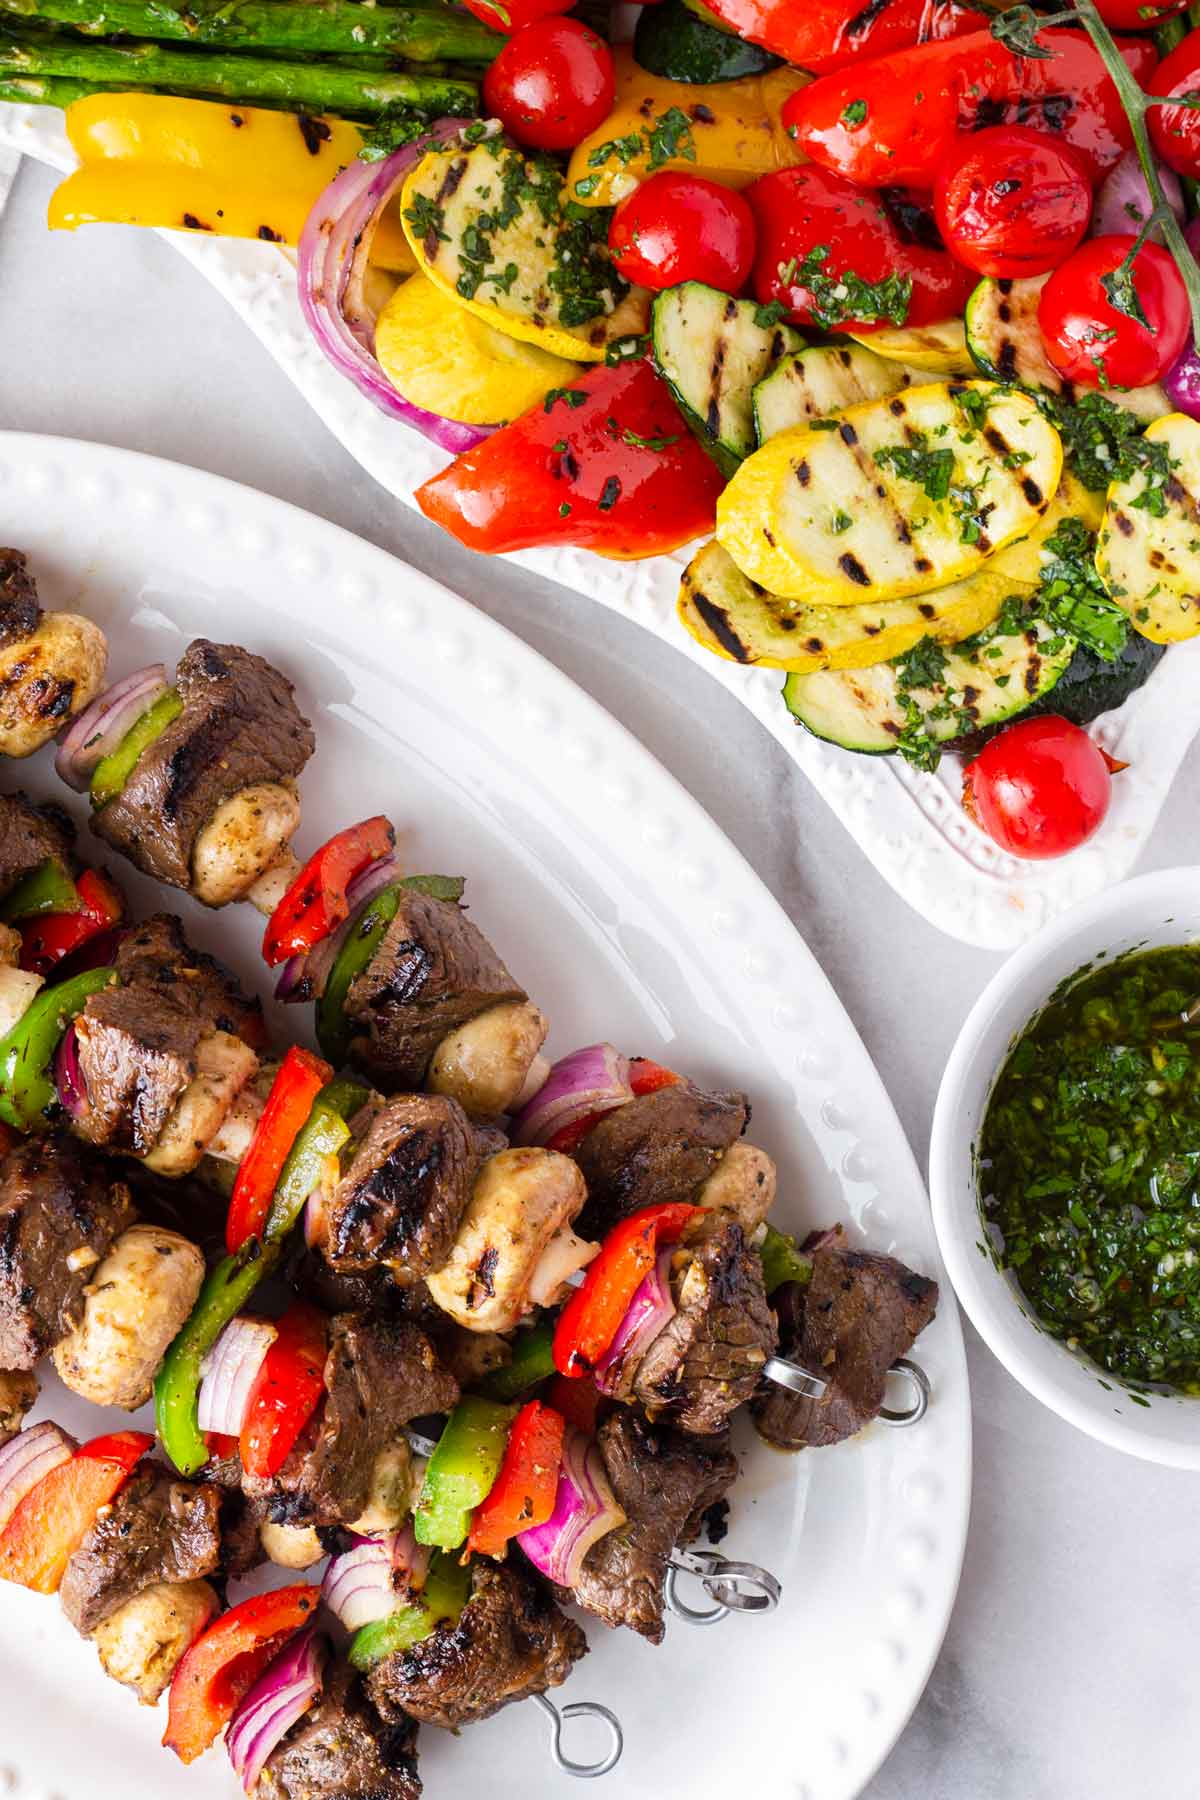 oval plate with grilled steak kabobs and a grilled vegetable platter with a side of chimichurri